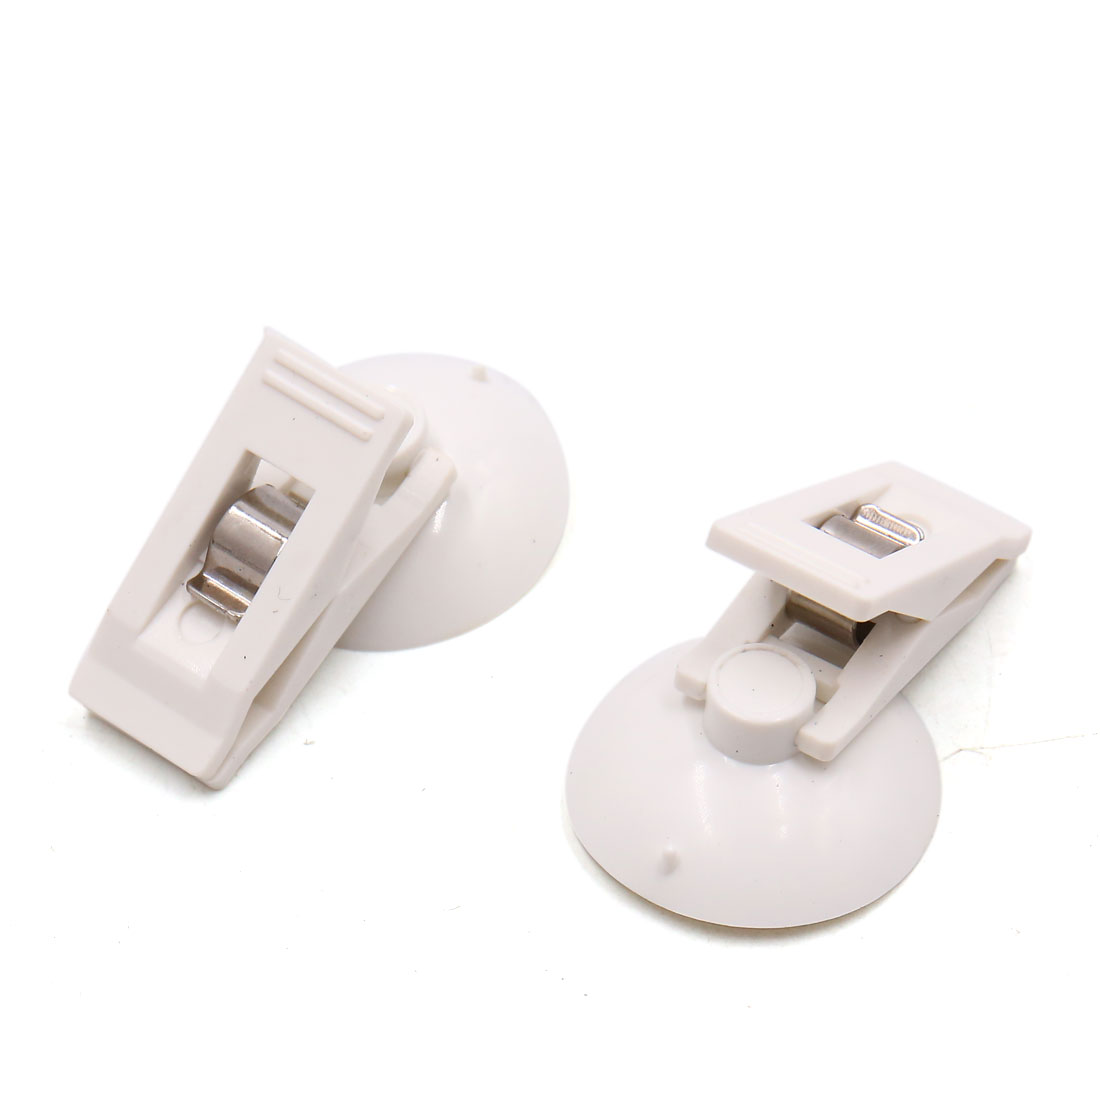 2Pcs White Plastic Suction Cup Windshield Curtain Card Photo Clip for Vehicle